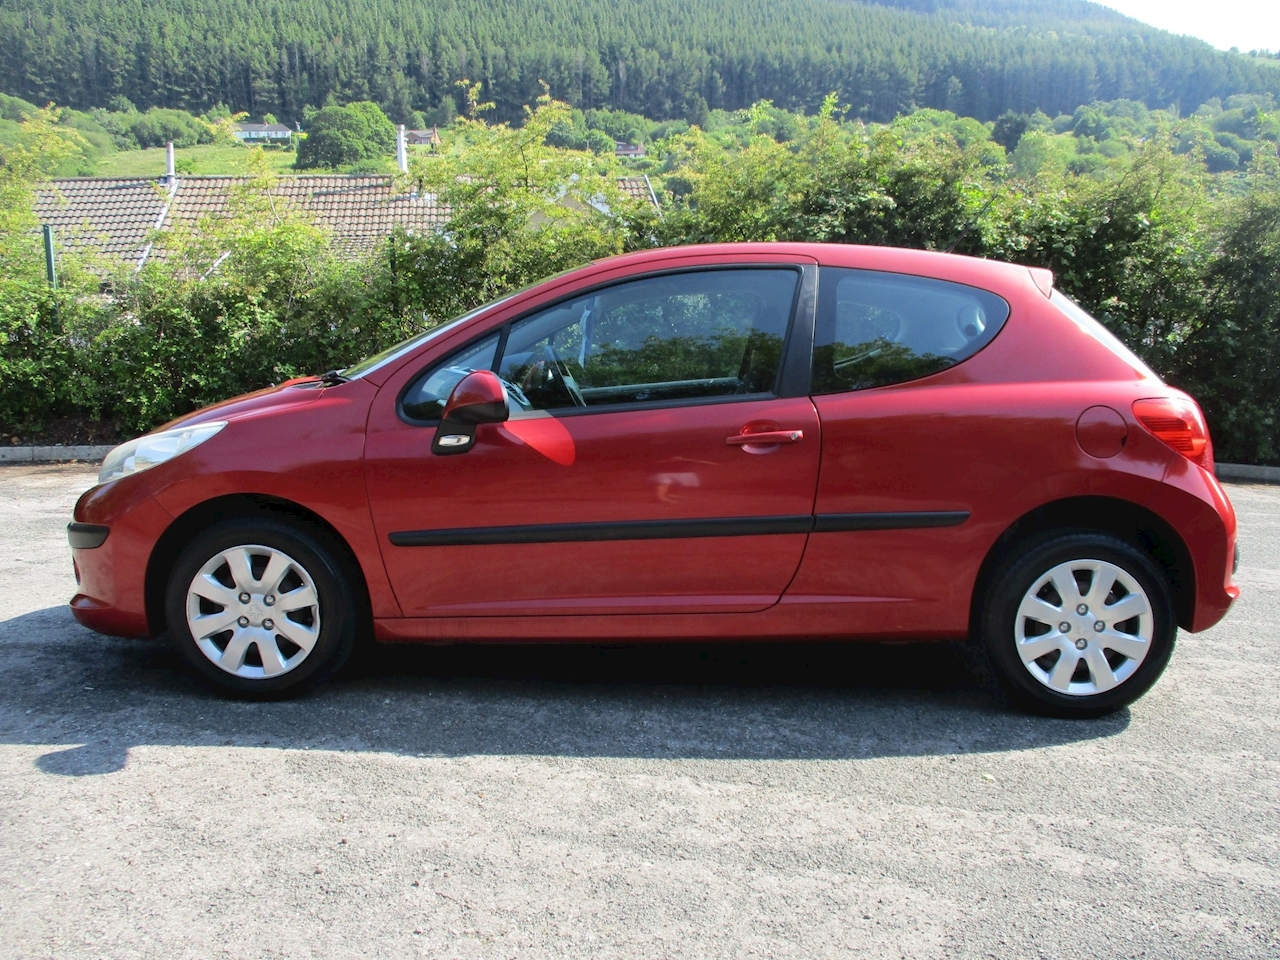 207 S Hatchback 1.4 Manual Petrol